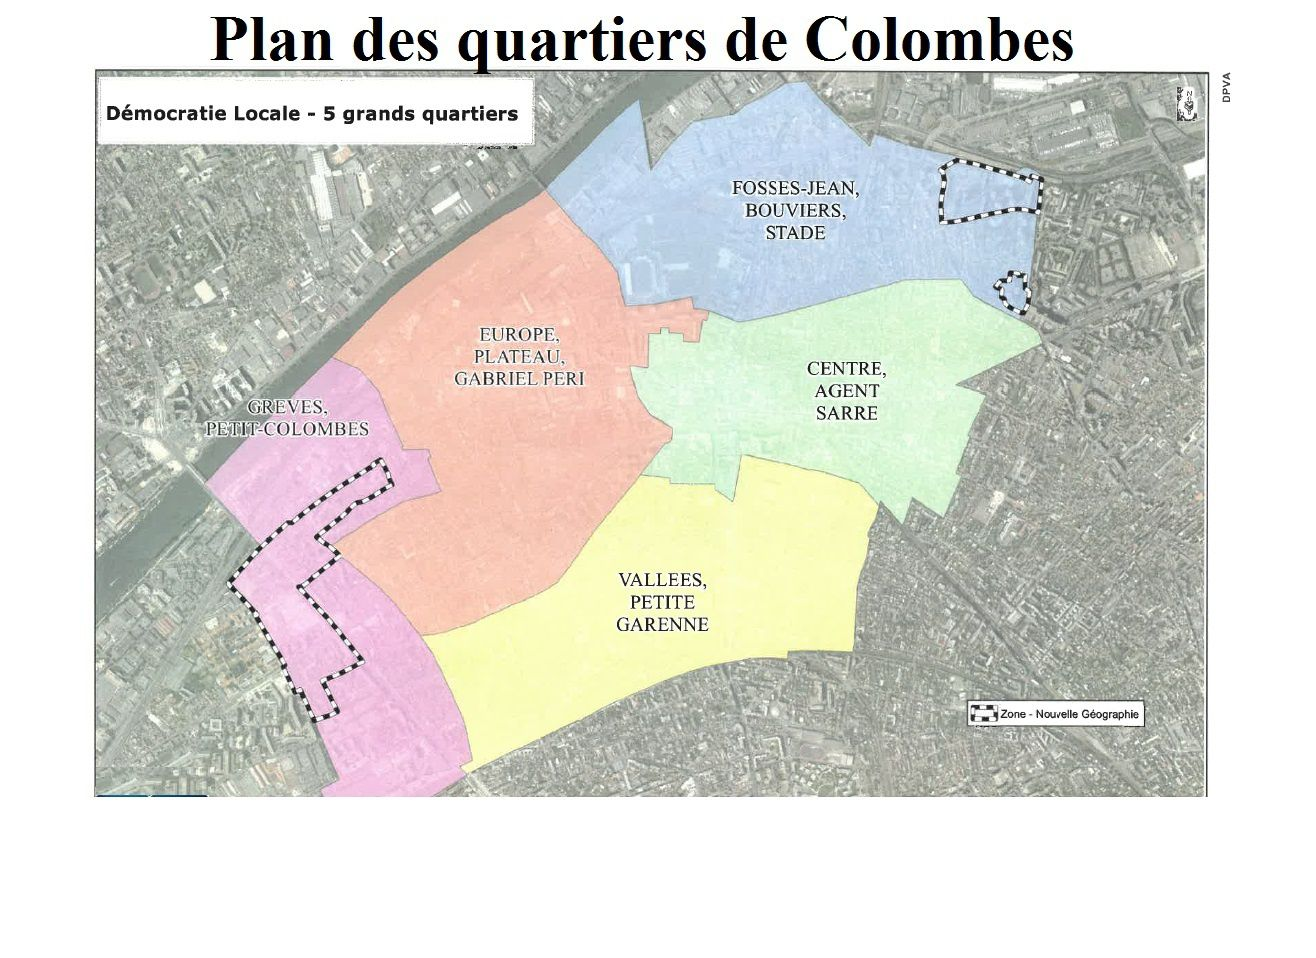 A - Carte des quartiers de Colombes